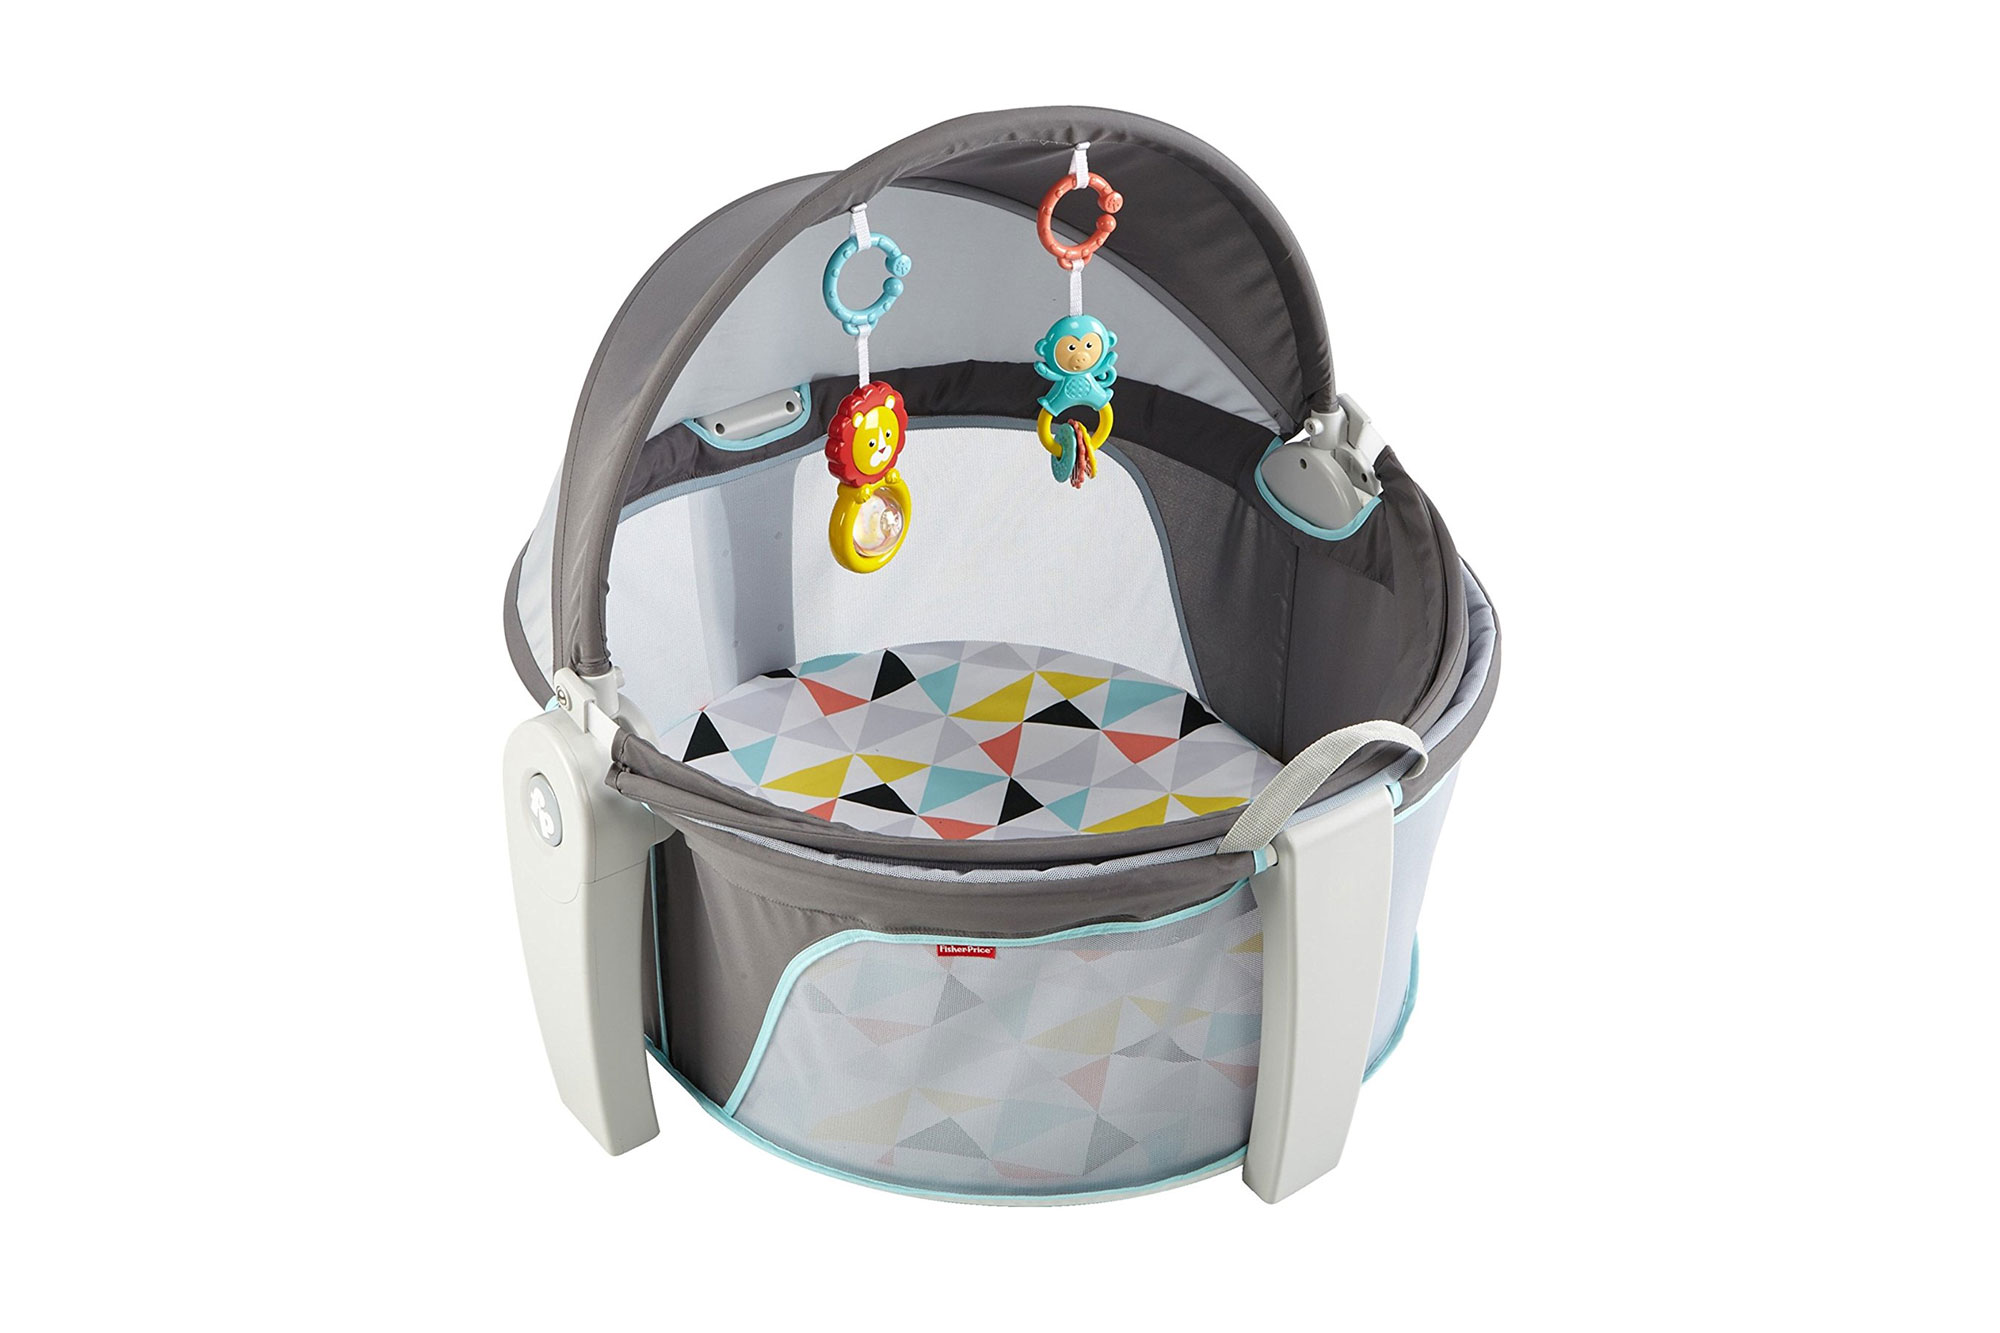 baby-dome-1-2000